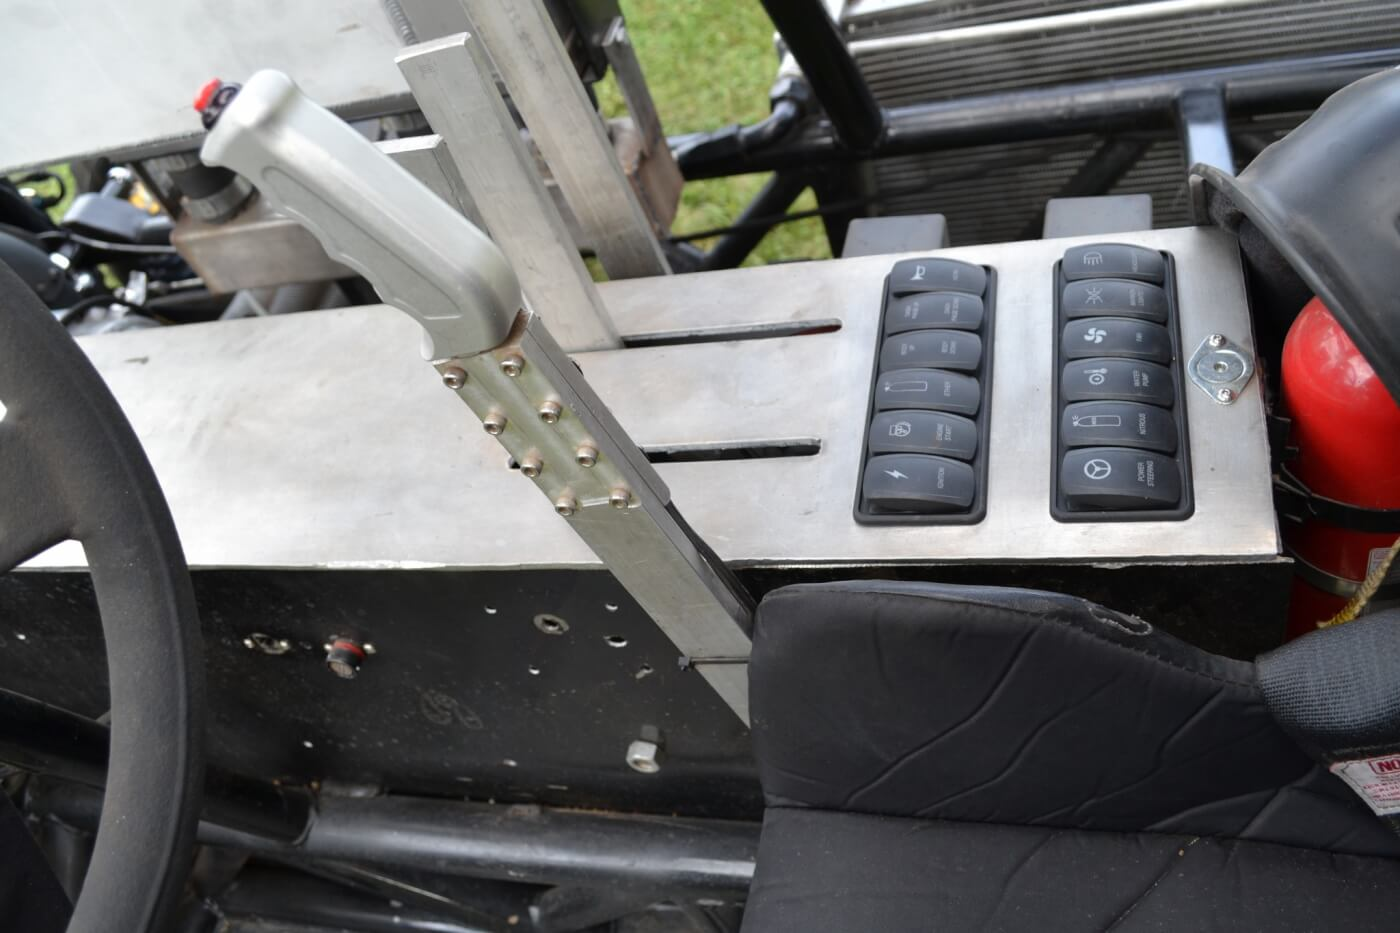 The interior of the puller is sparse and functional. The lever to the right of the steering wheel is a hand throttle, which allows very precise control of the engine, especially on rough tracks. The OEM-style buttons on the switch panel were custom made, so were control things like the lighting, ignition and fuel pump.